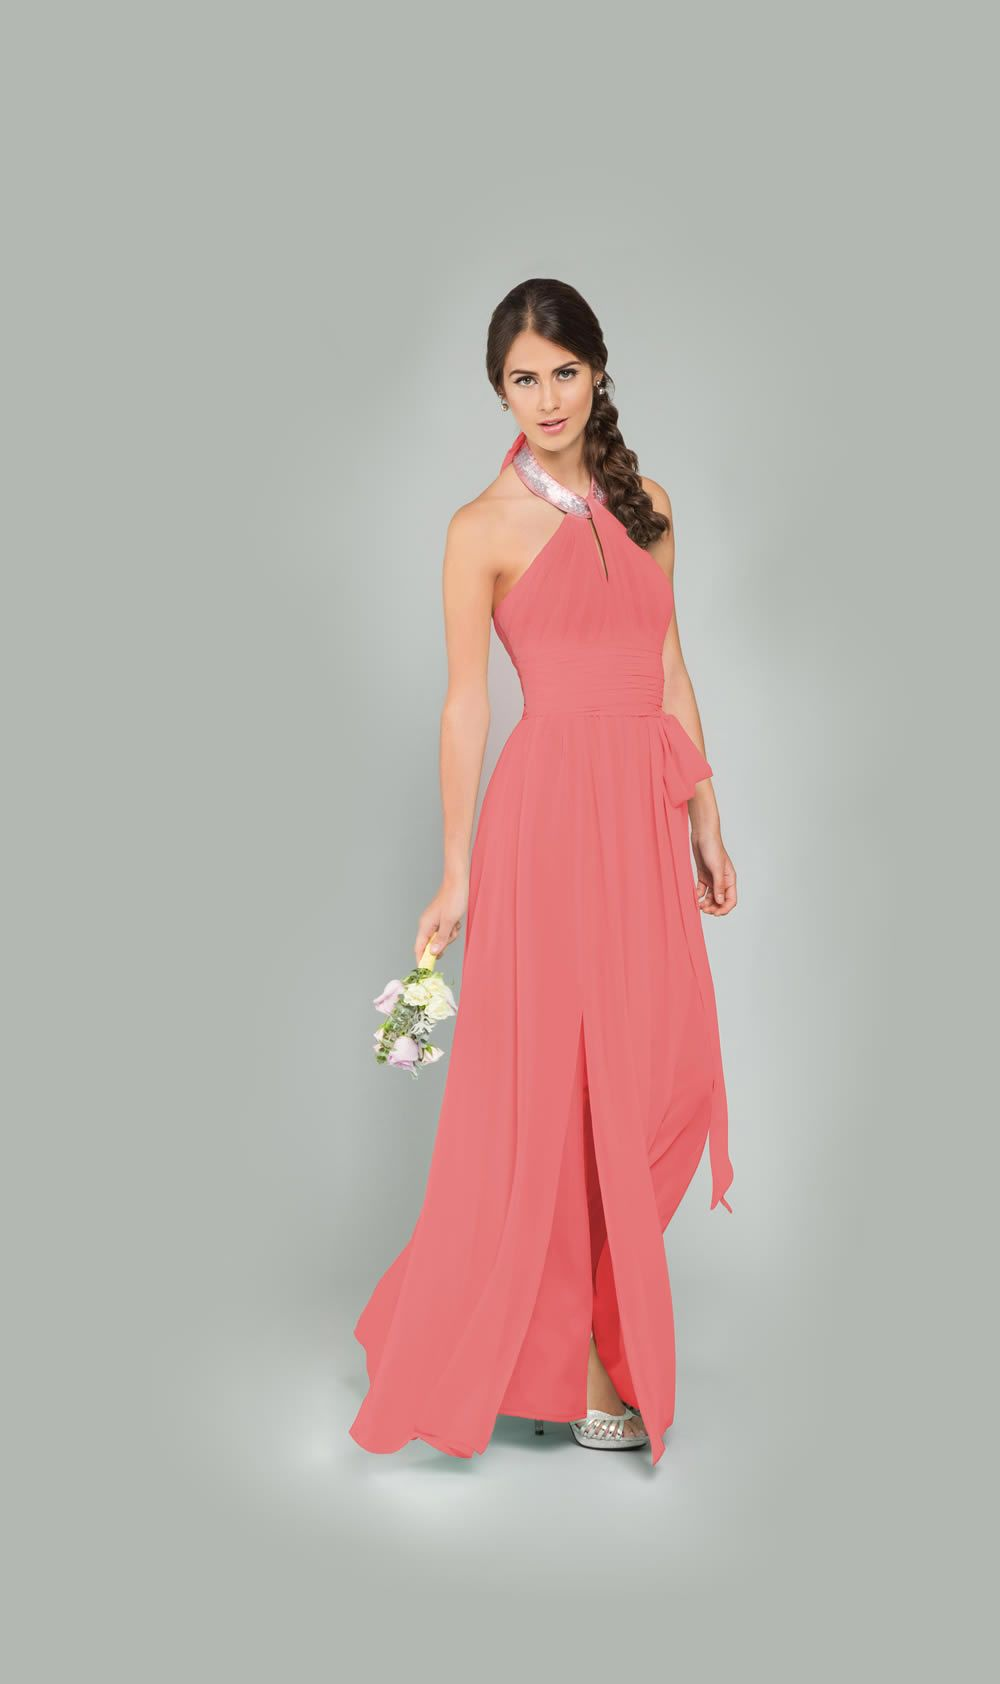 Vestido dama de honor www.bridesmaids.mx #boda #damasdehonor ...